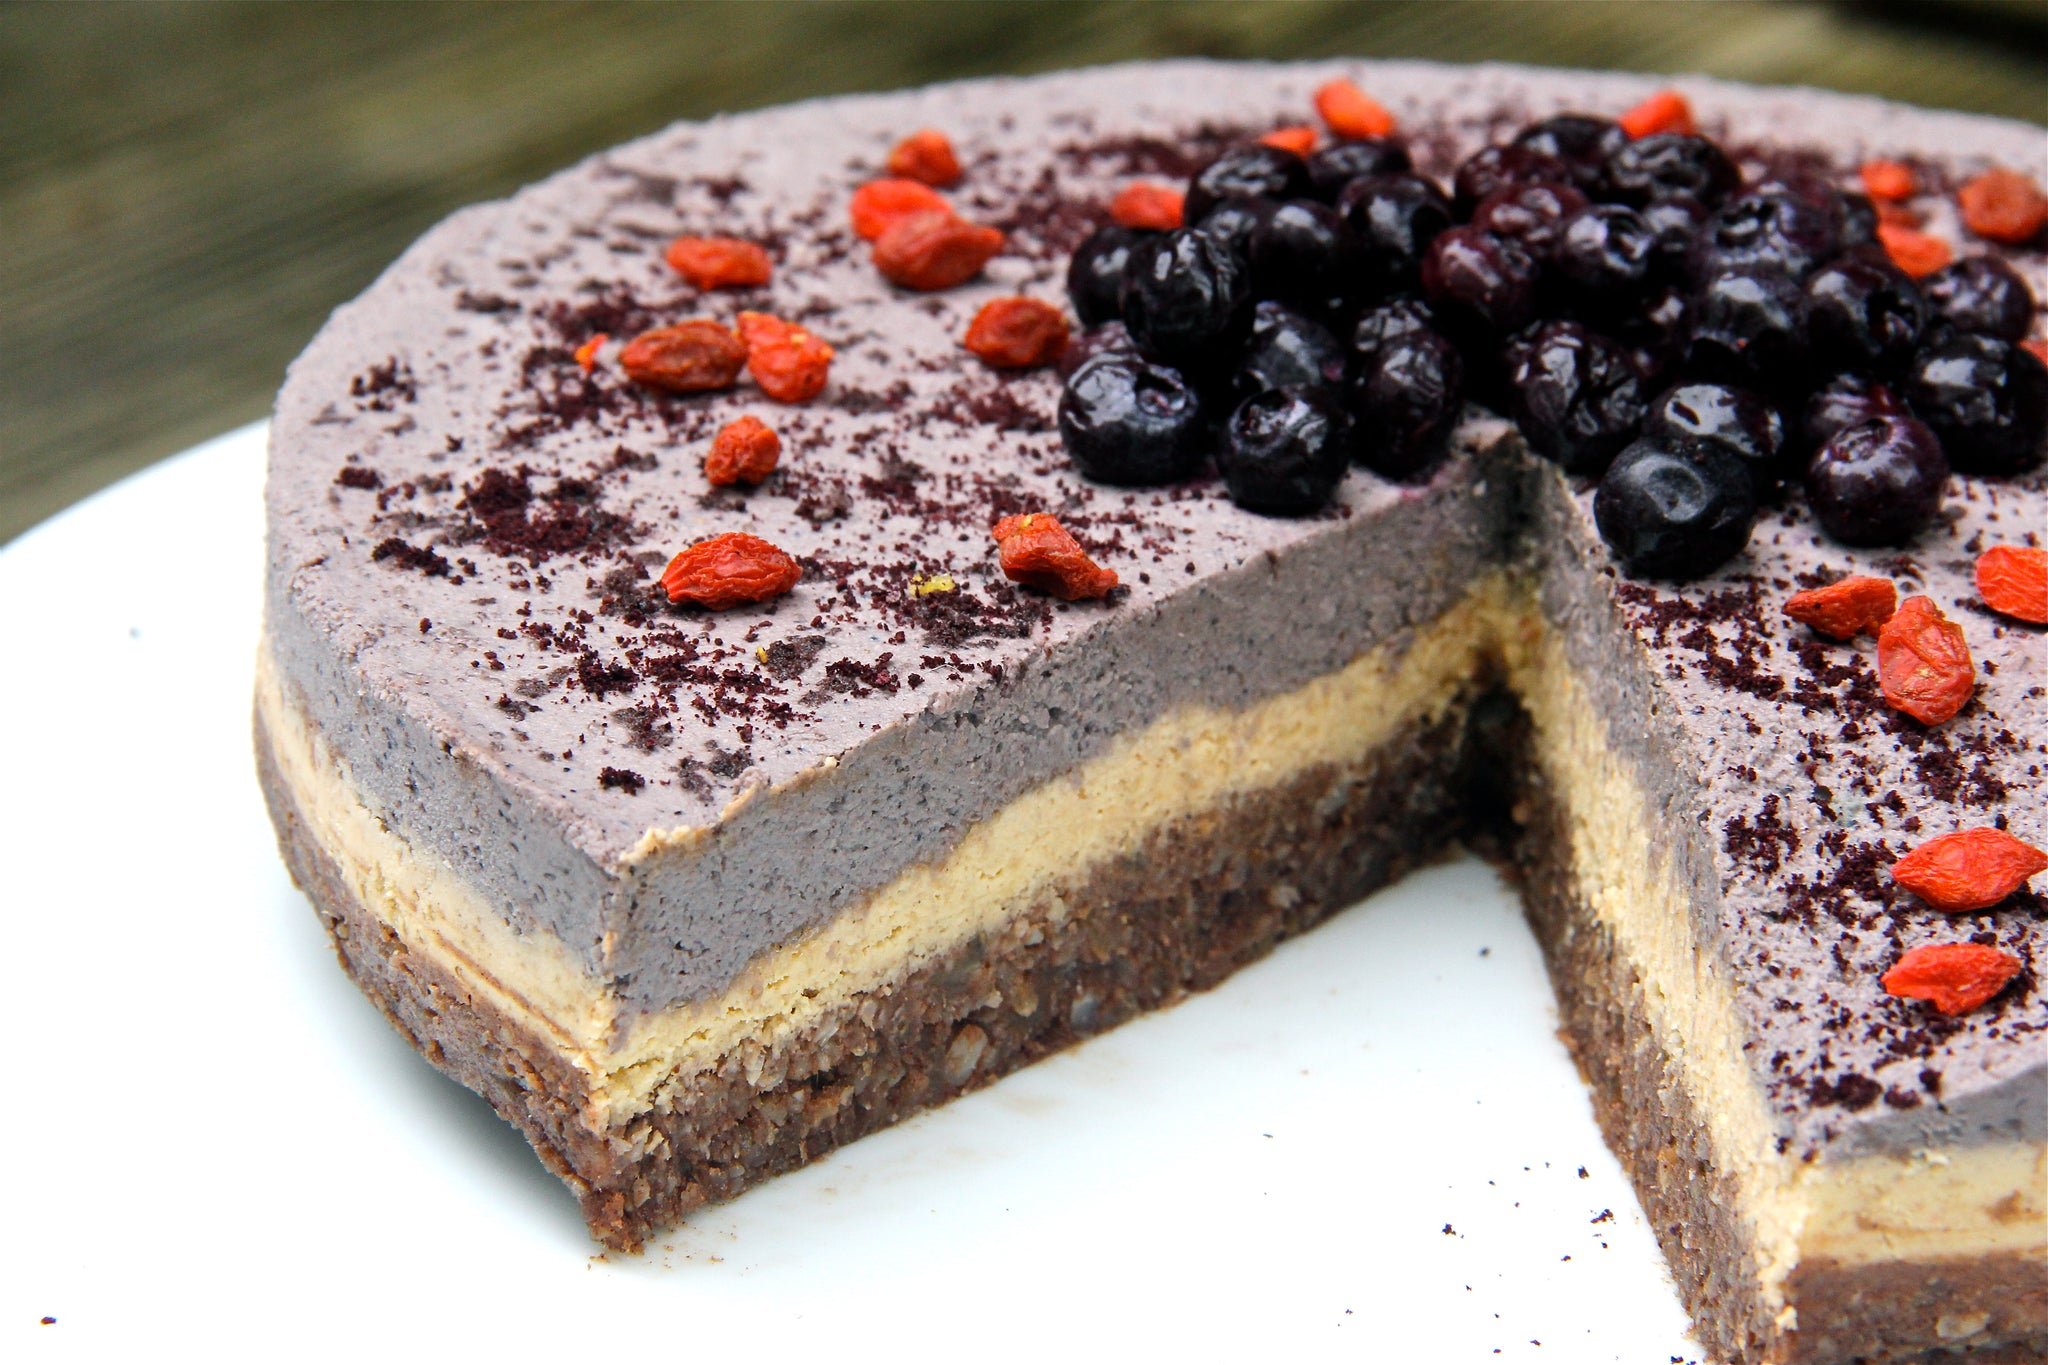 Raw Summer Superfood Cake #healthy #vegan #cake #recipe #dairyfree #sugarfree #glutenfree #plantbased #begoodorganics